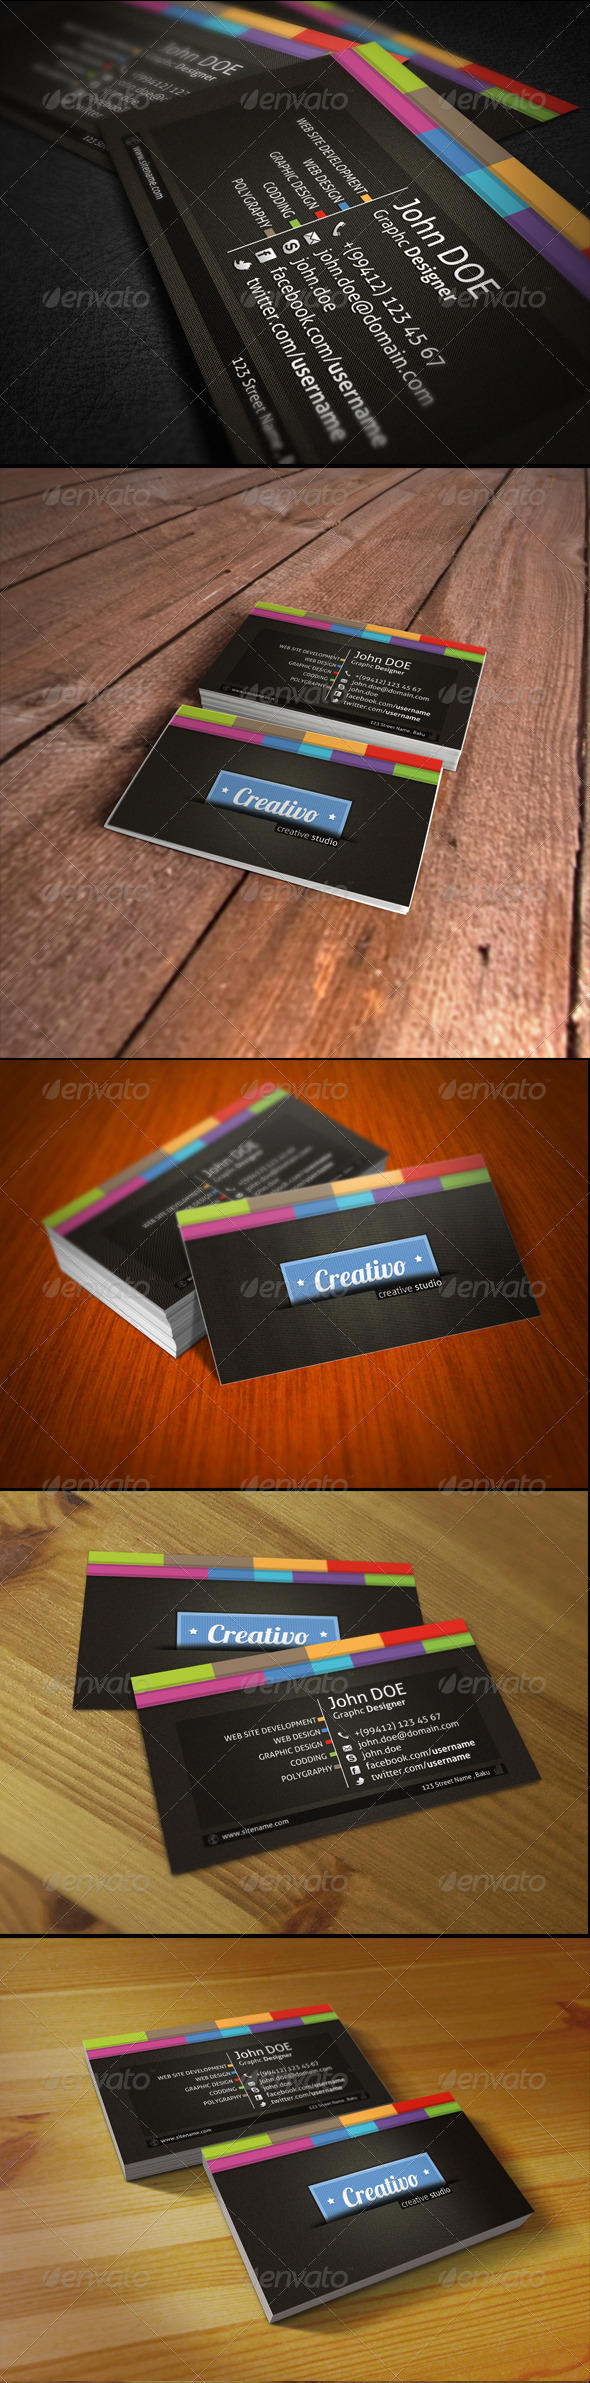 Creativo Business Card - Creative Business Cards